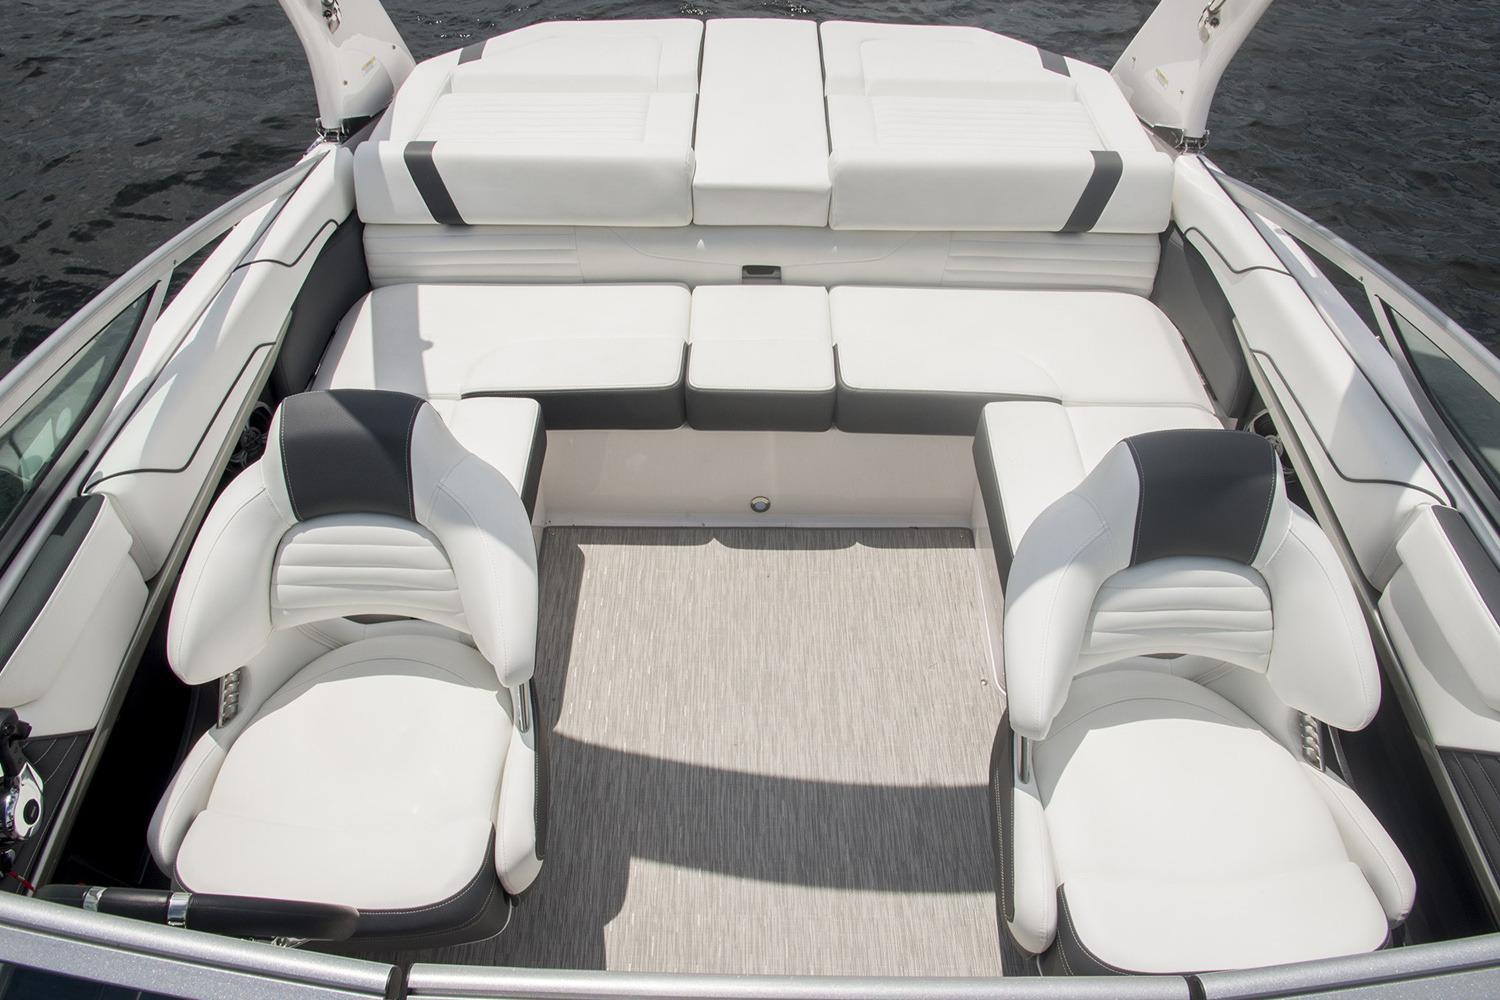 2019 Regal 2100 Bowrider in Bridgeport, New York